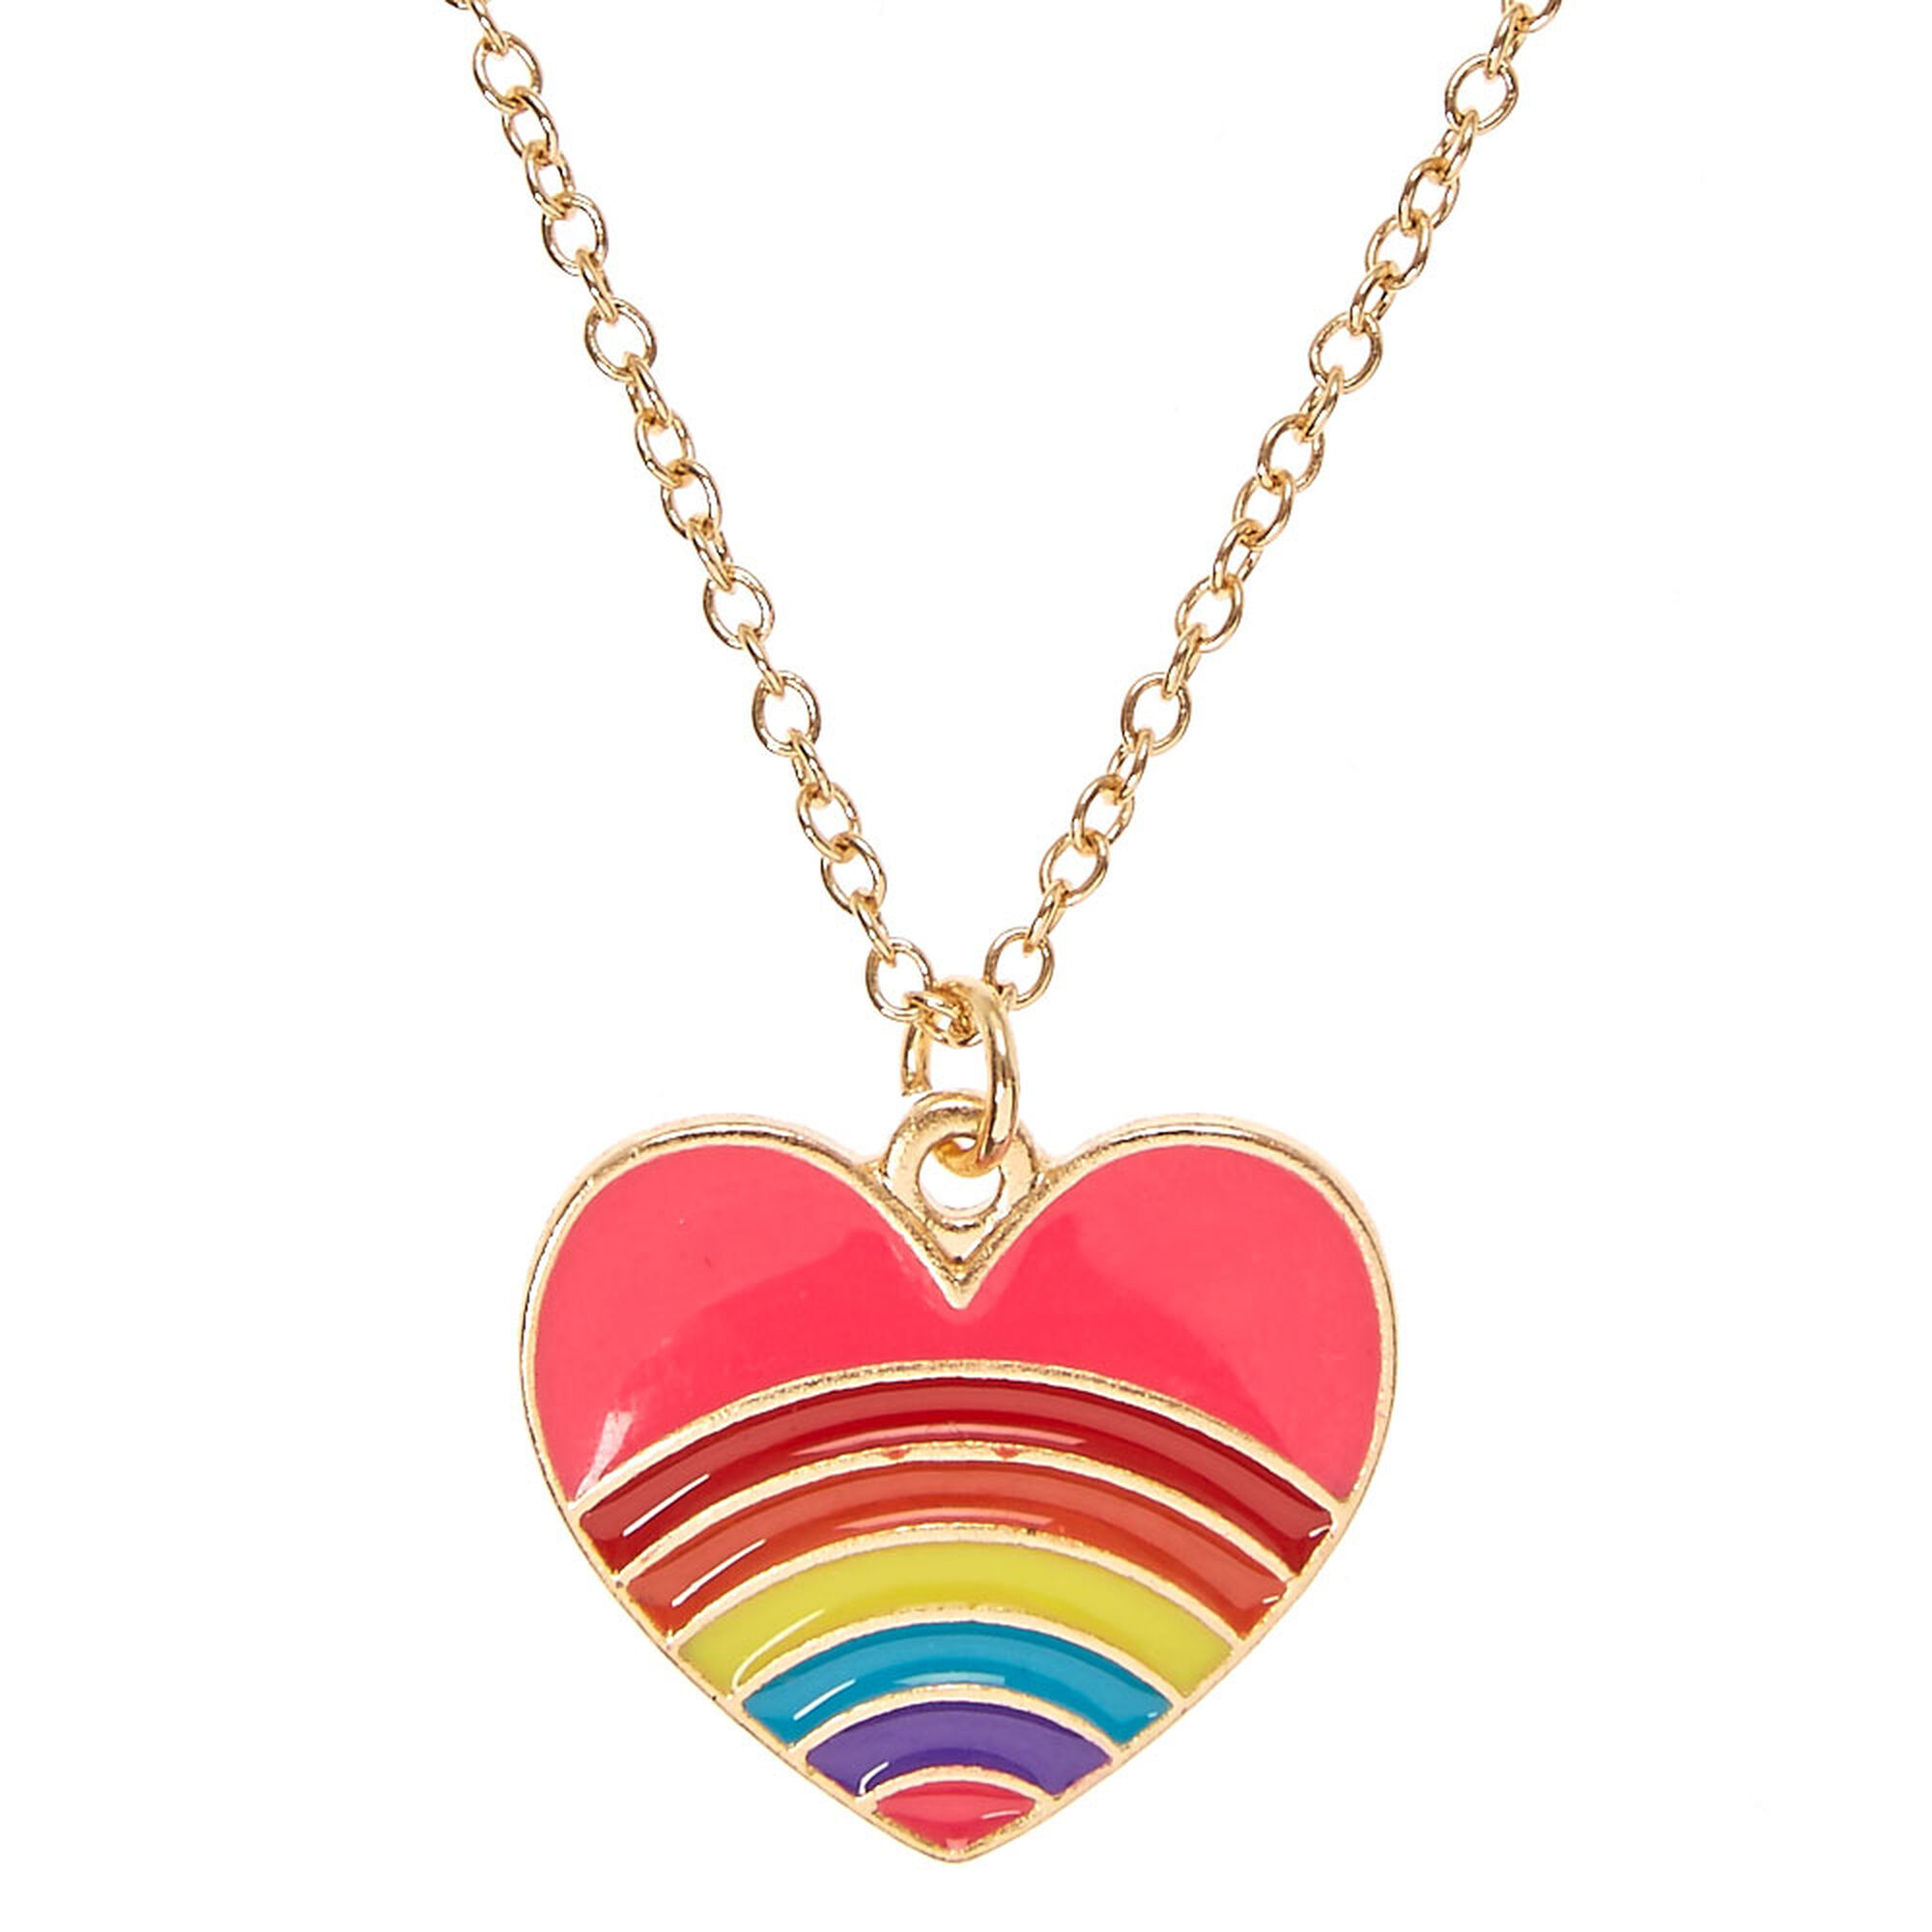 crop upscale false the ghost hr silver necklace subsampling guccighost editor in gucci rainbow scale product shop jewellery